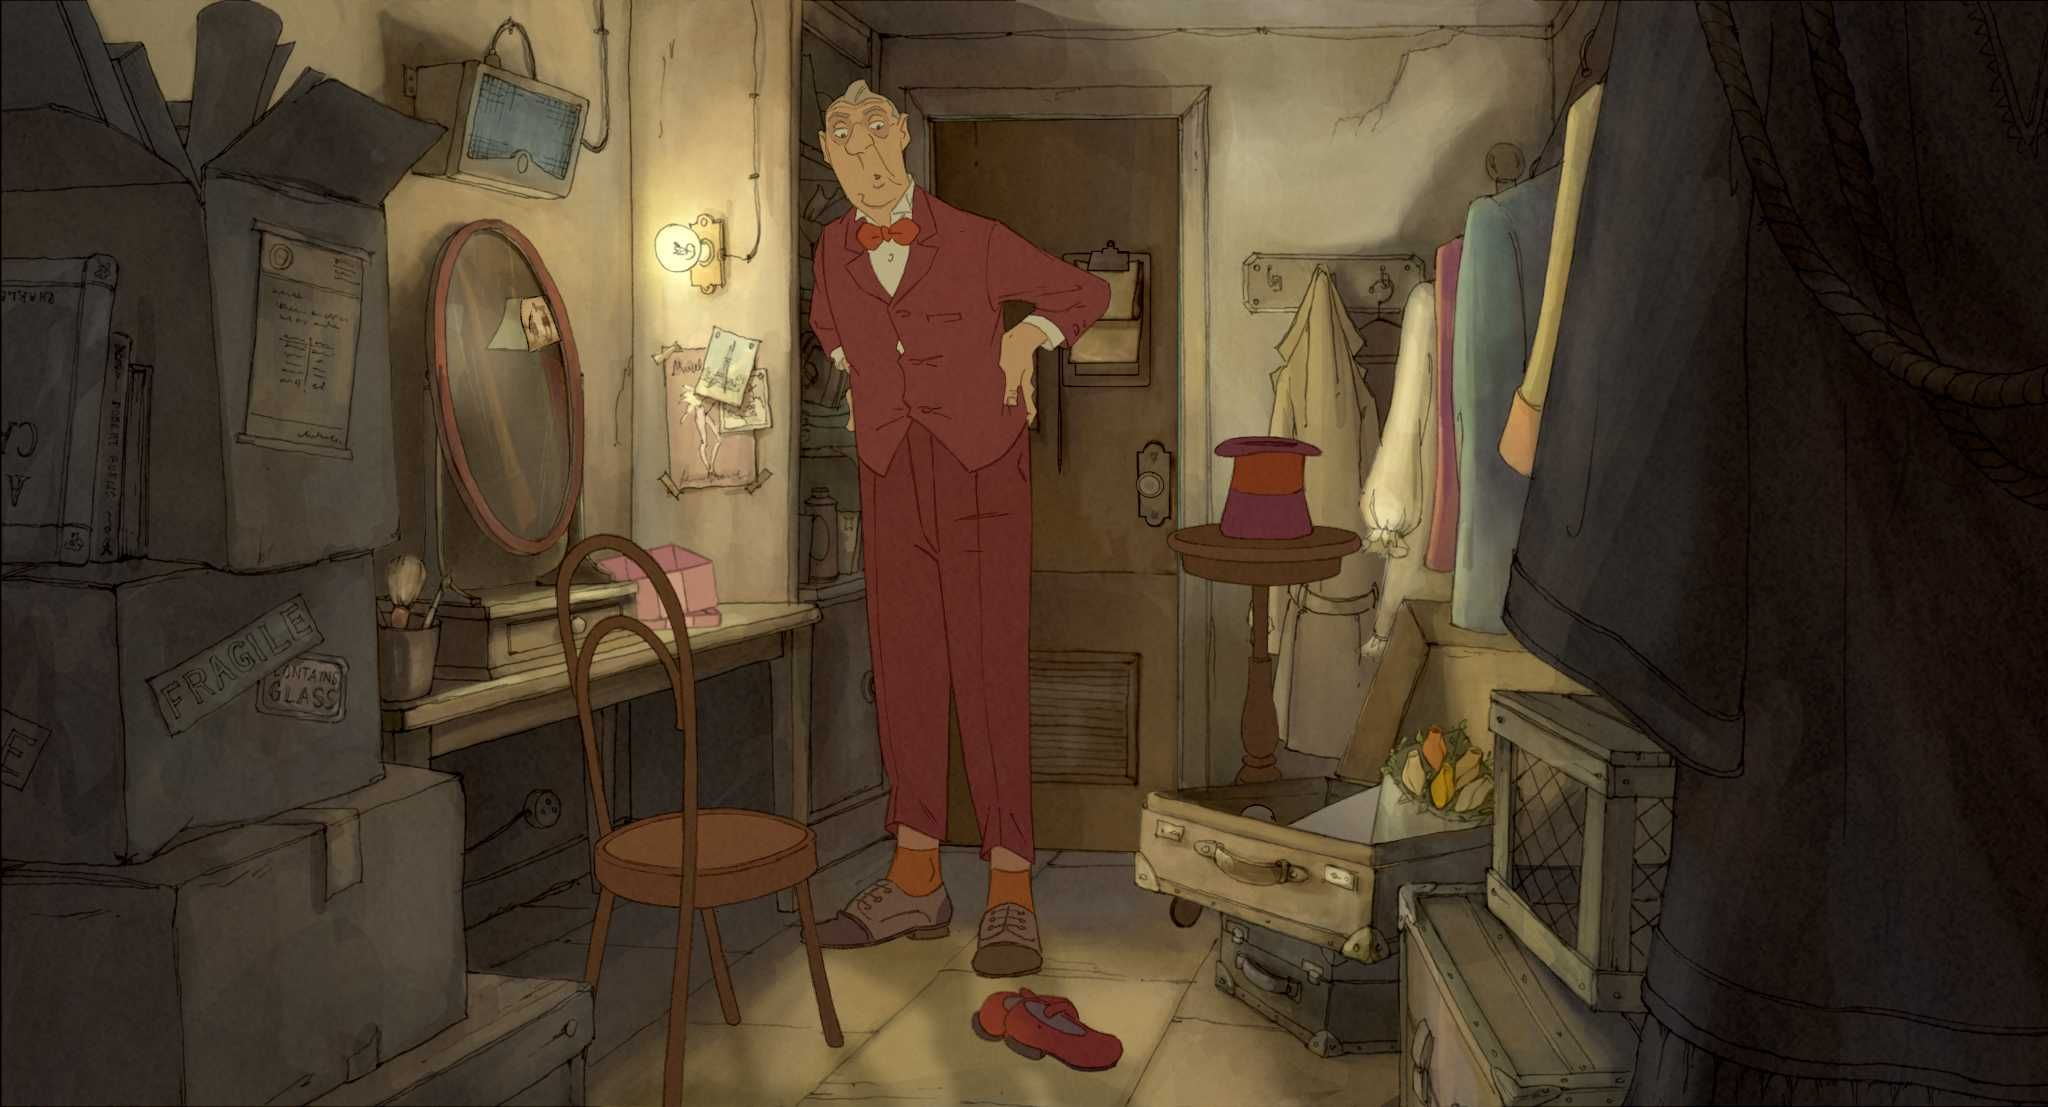 sylvain chomet art Google Search The illusionist